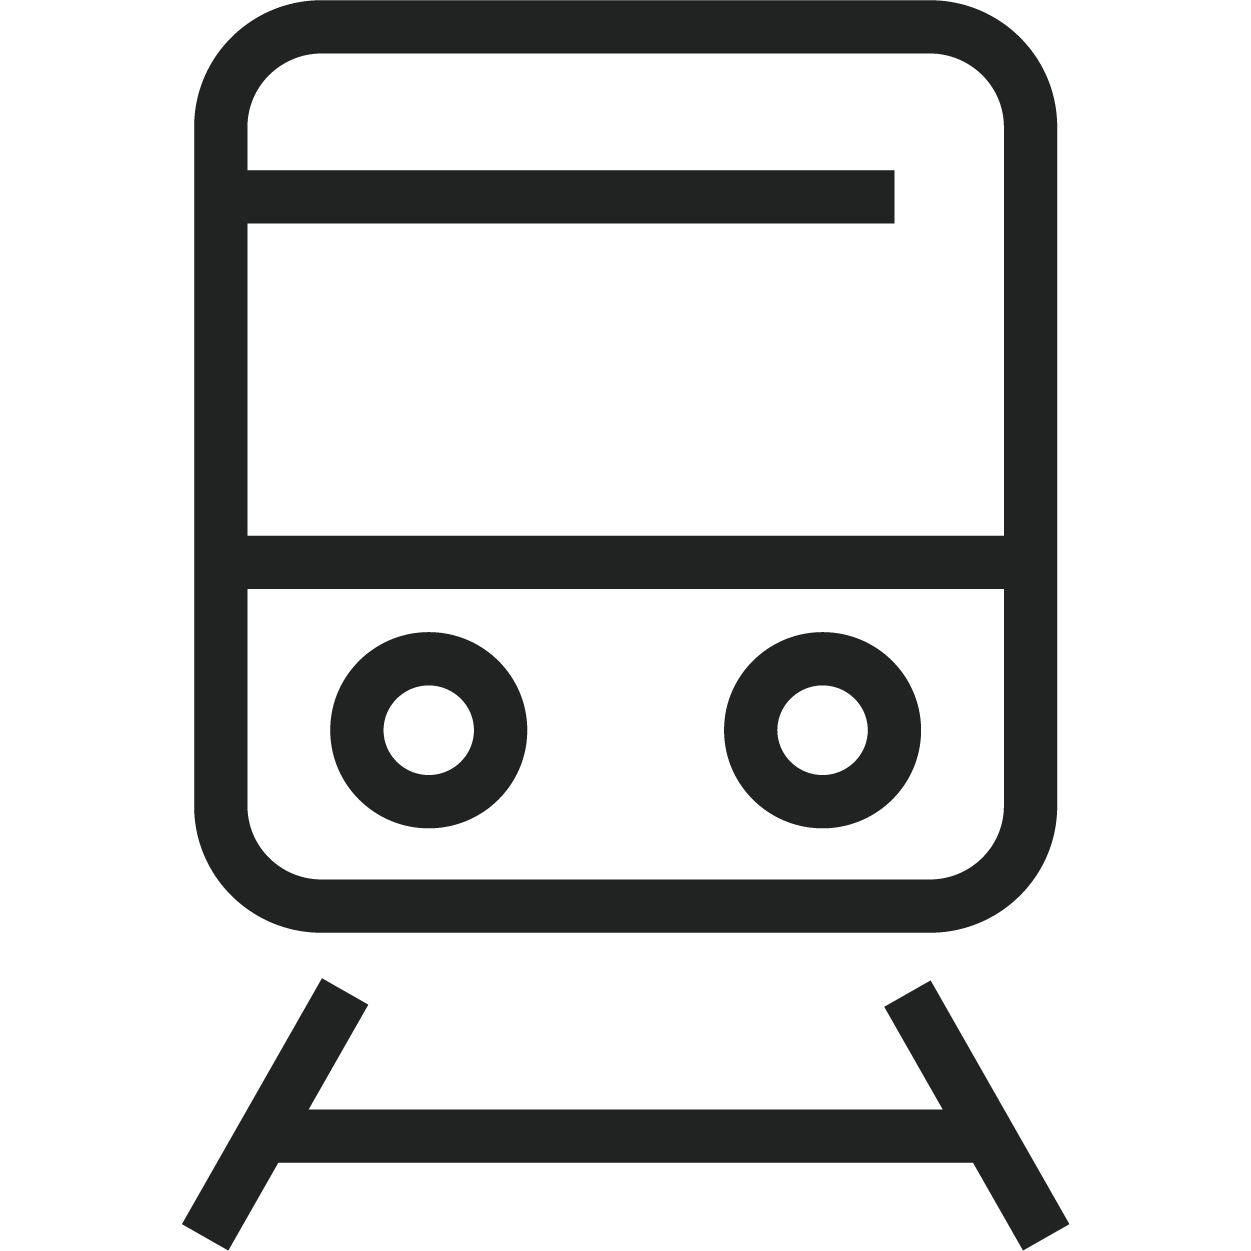 CMP005_Icons_Train_Black.png